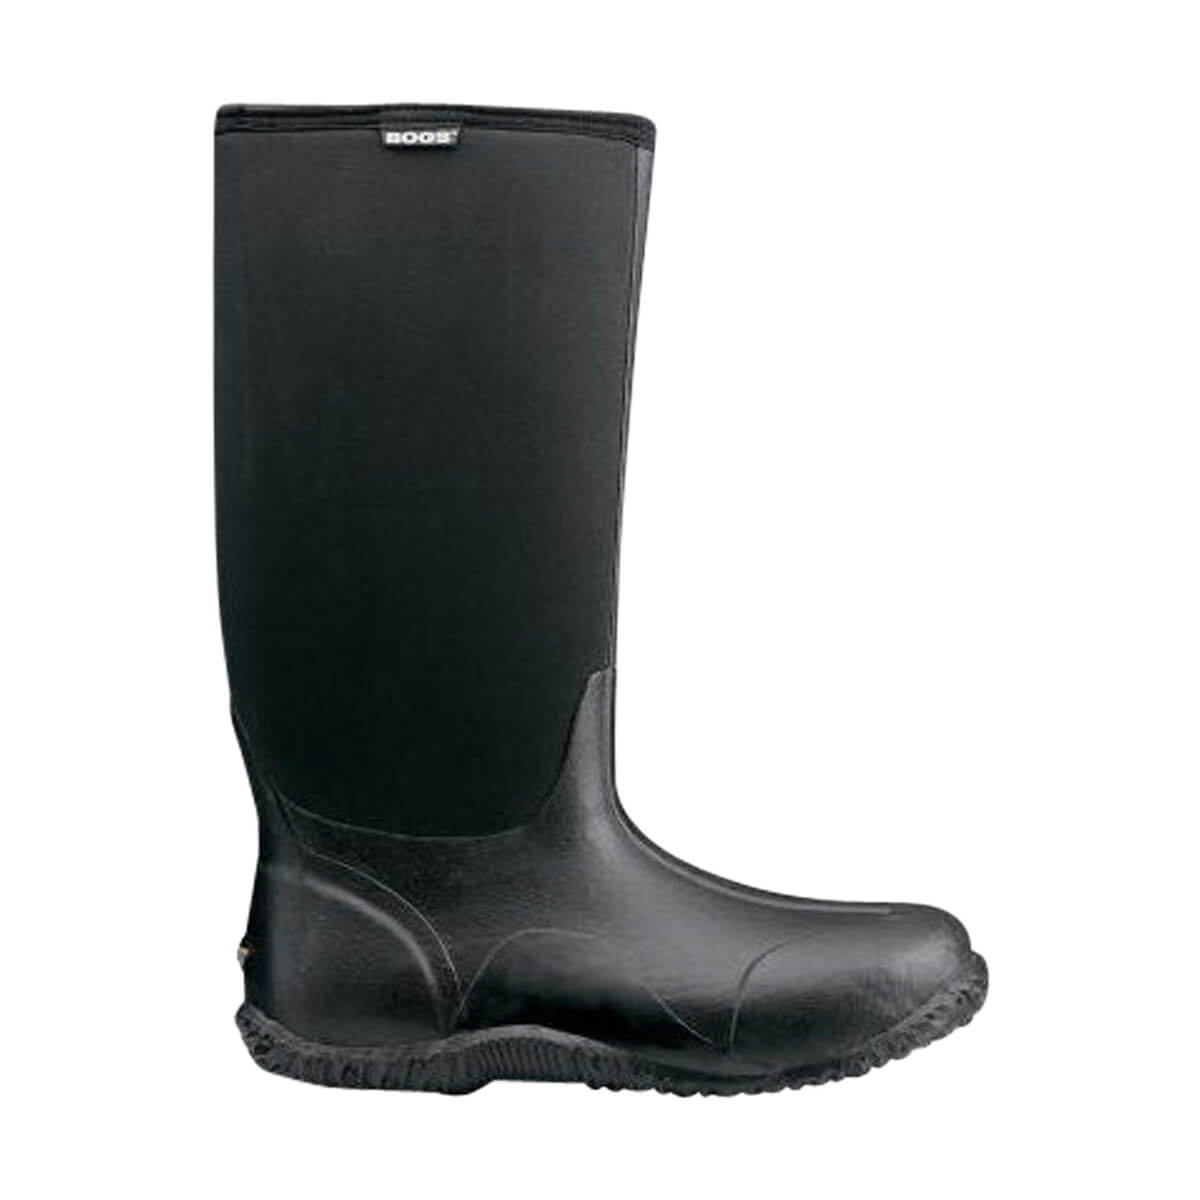 Women's Bogs Classic High Boot